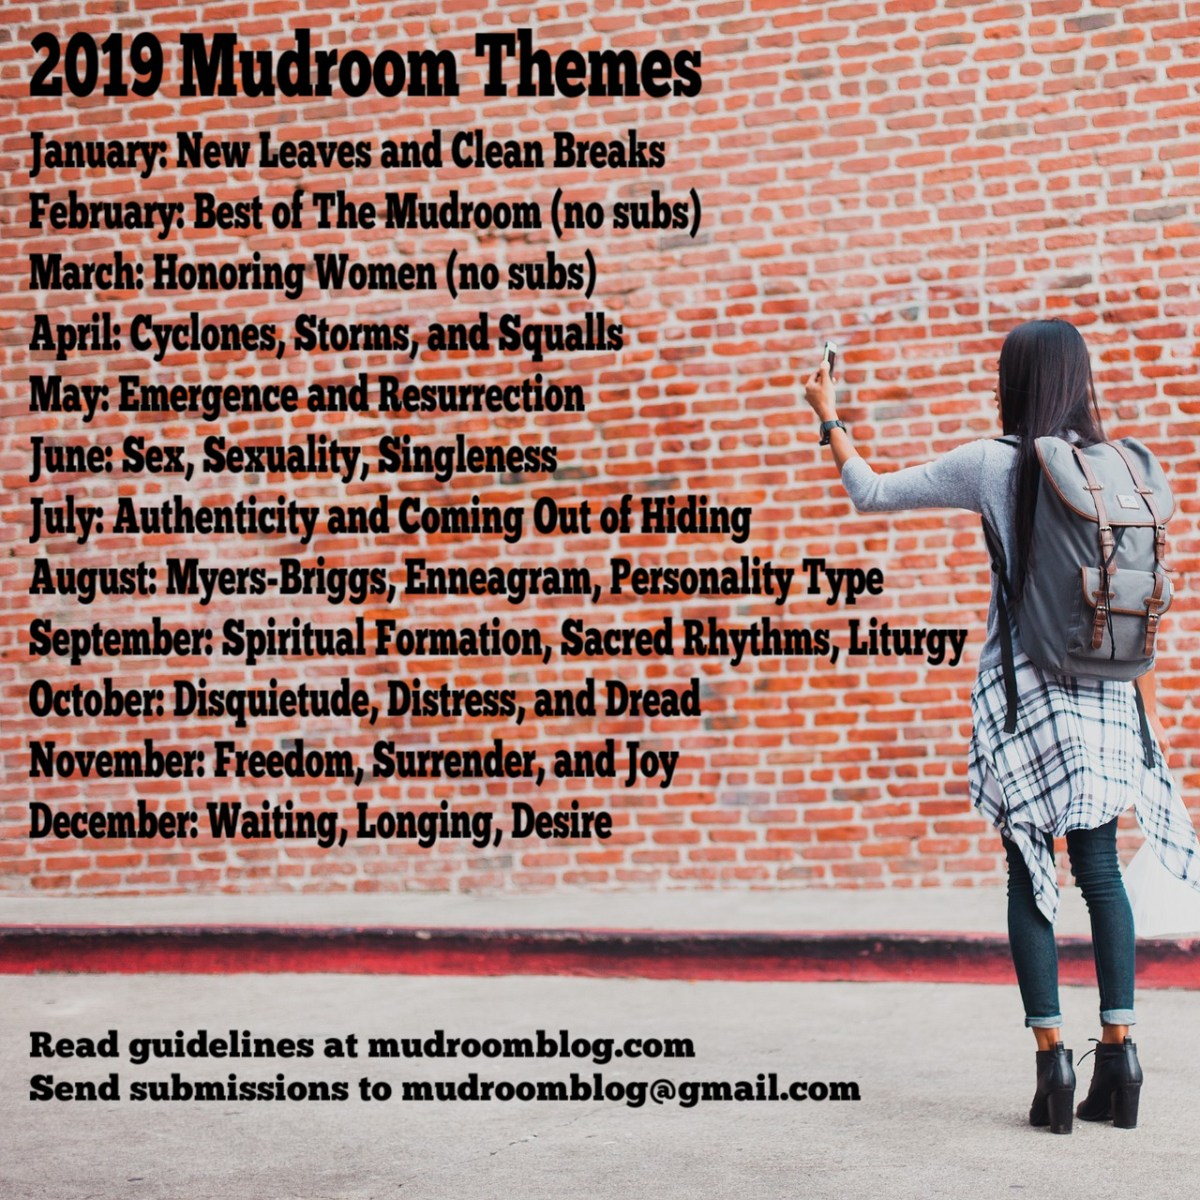 Mudroom News! And Themes!